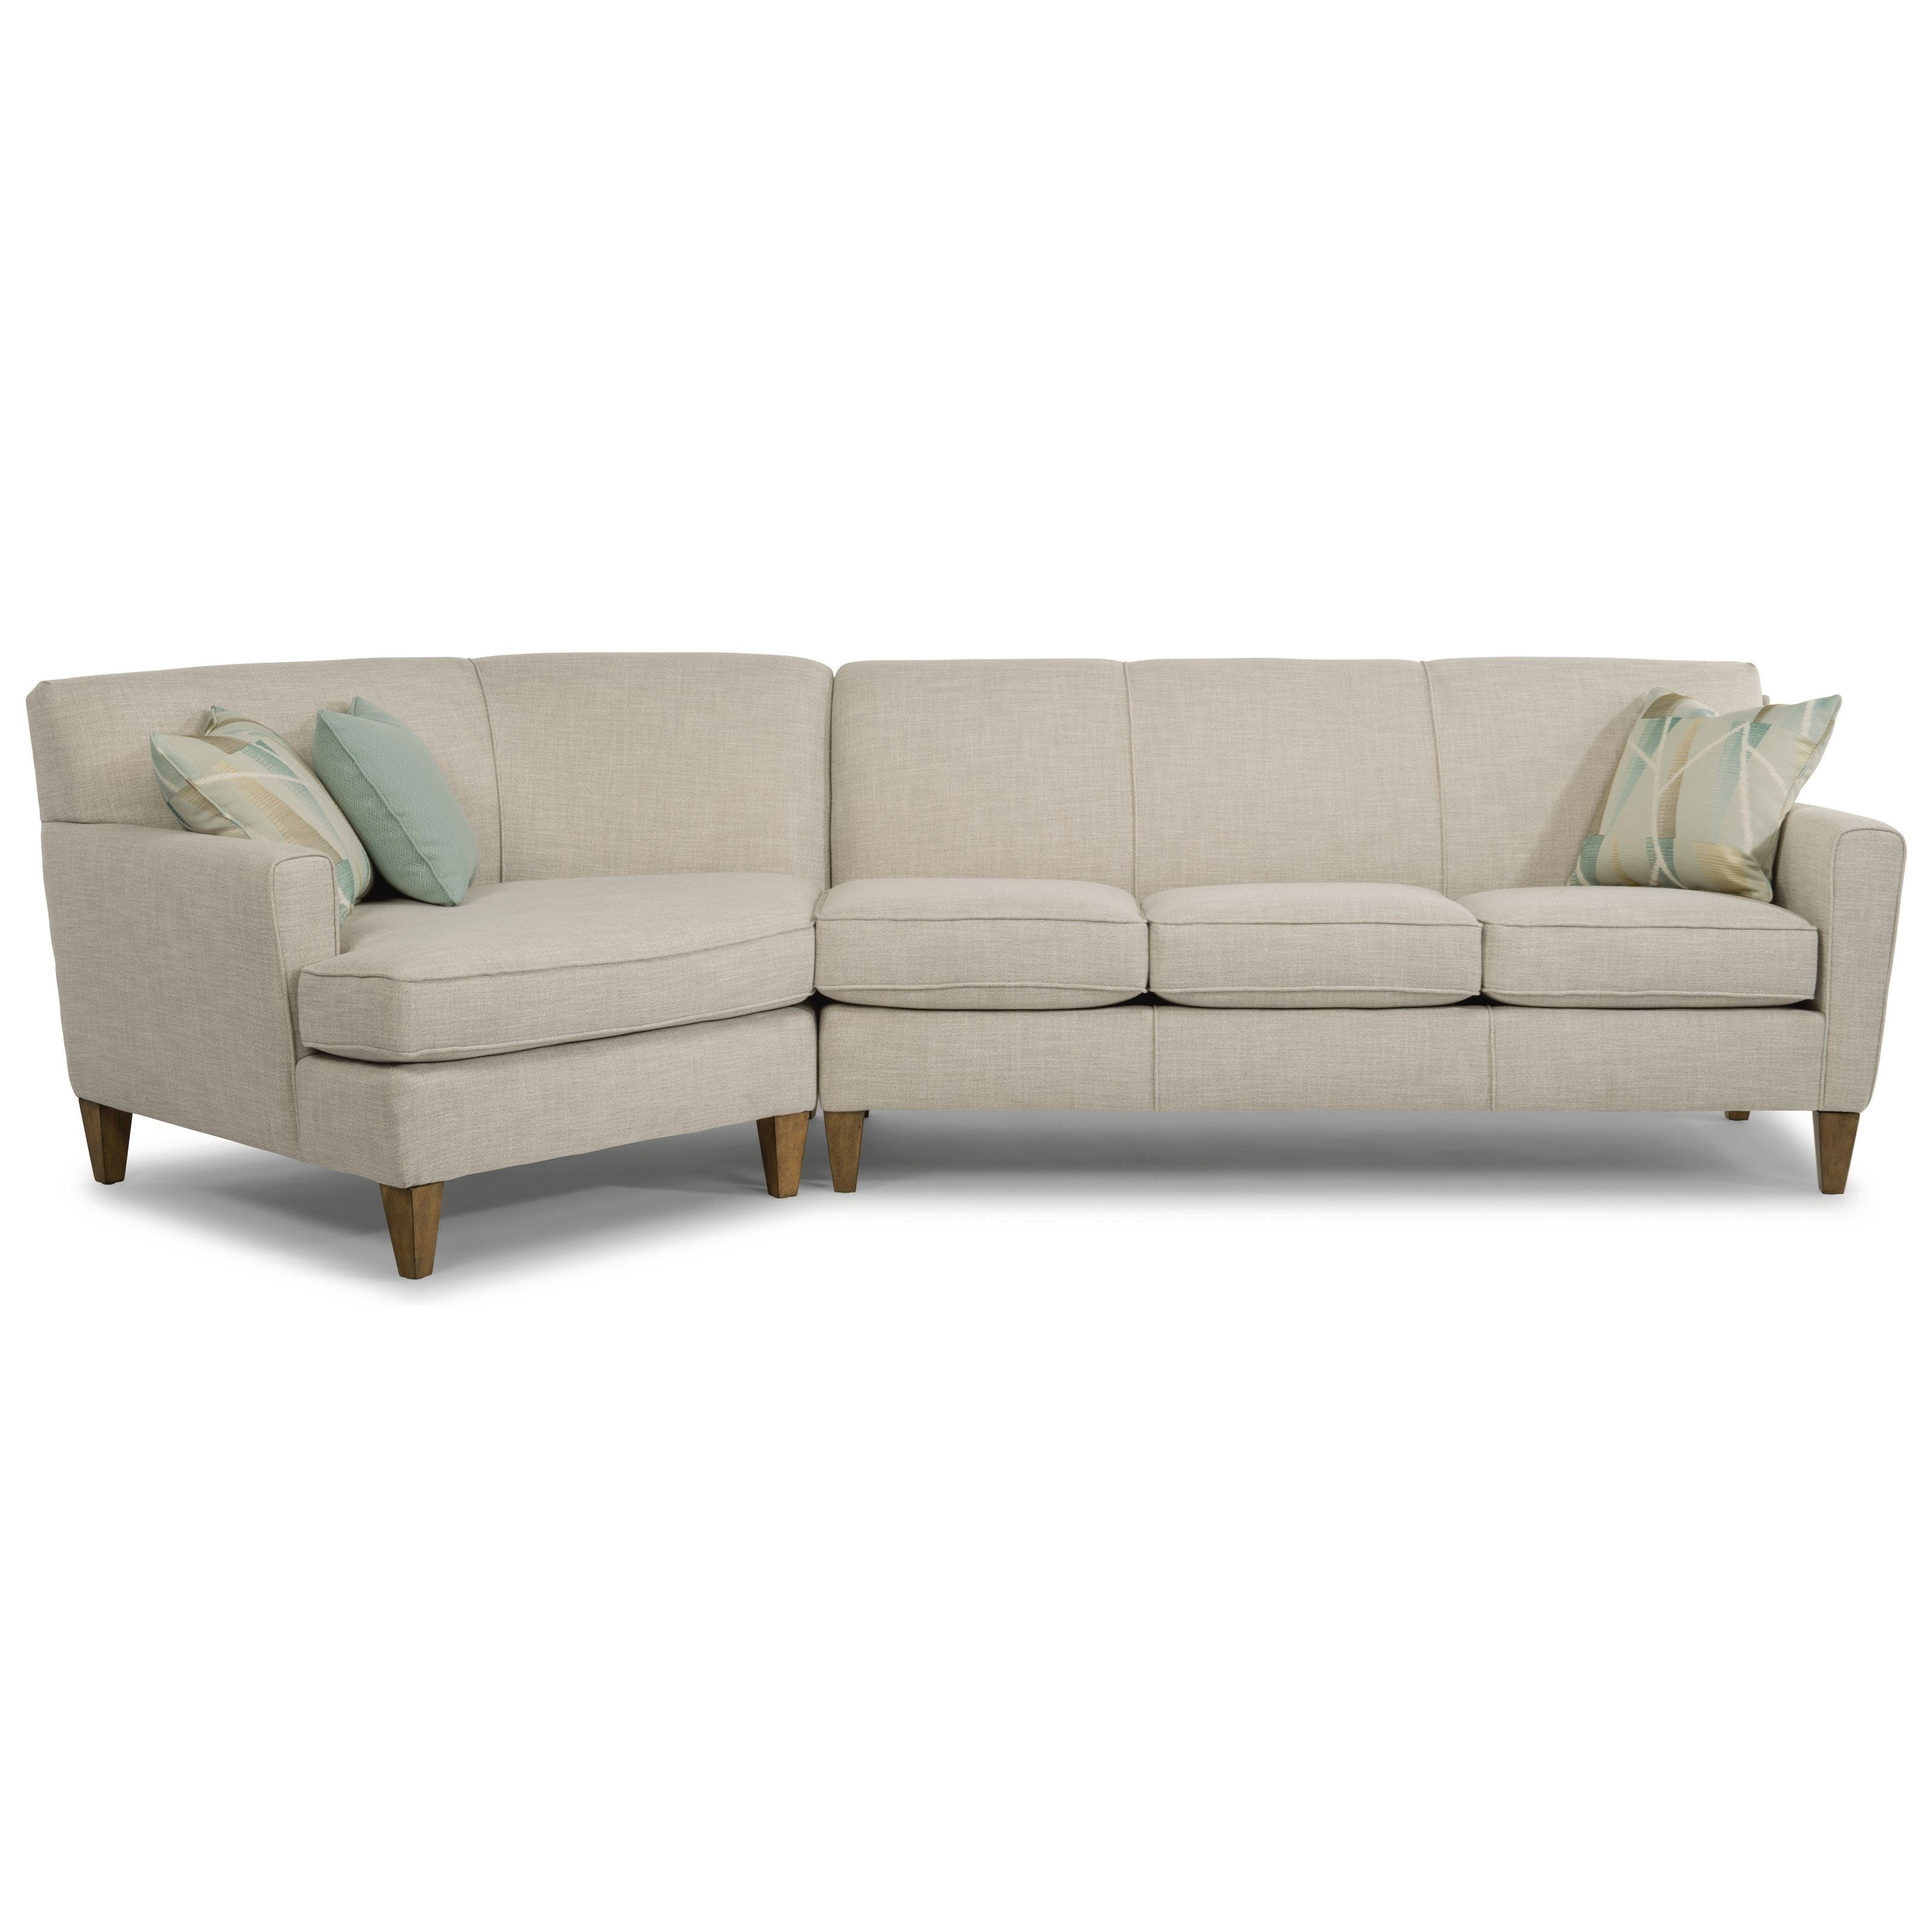 2-Piece Sectional with LAF Angled Chaise